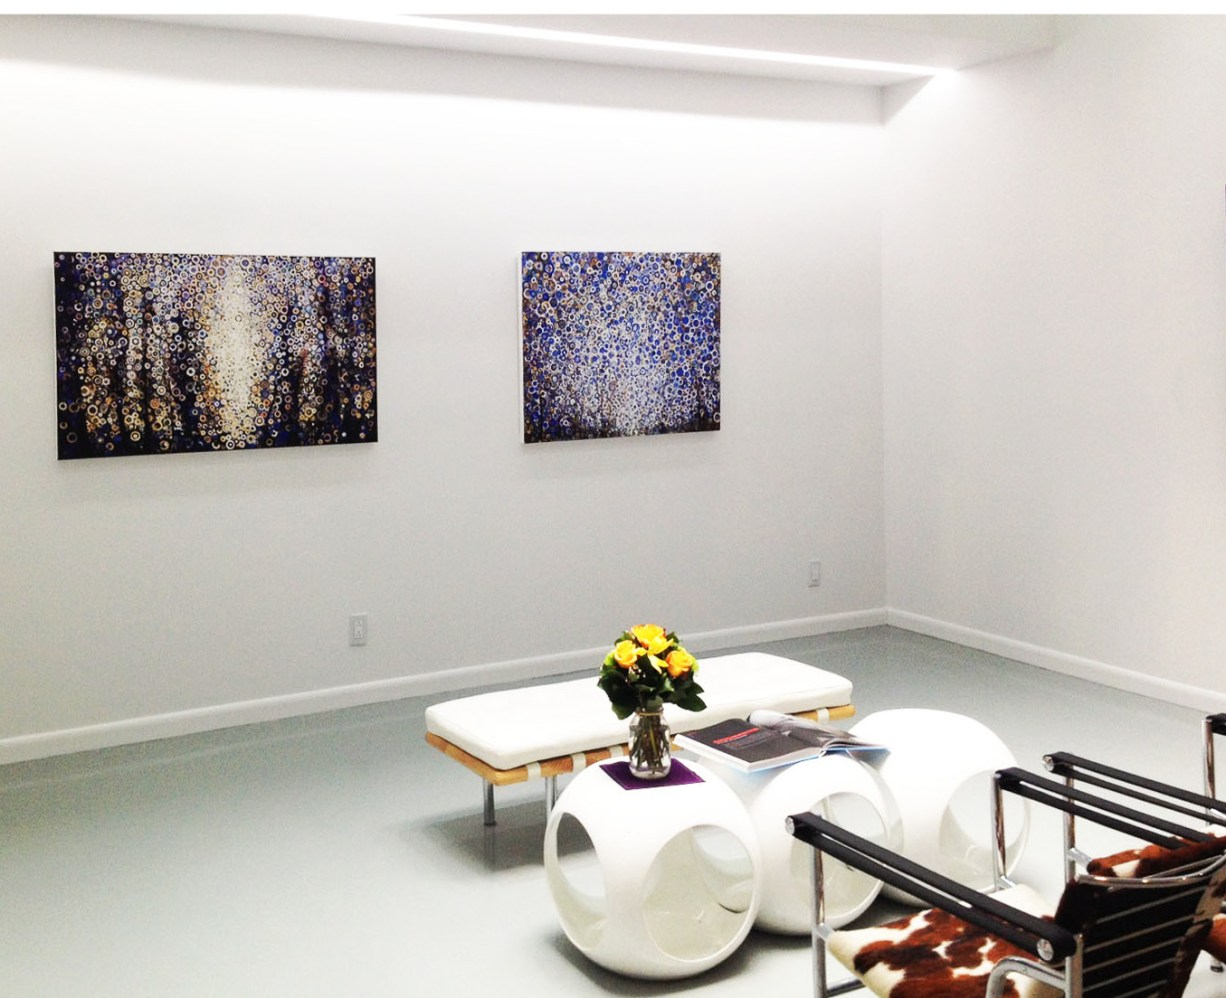 """Two paintings by Randall Stoltzfus hang at Blank Space Gallery in 2015. Left canvas is titled """"Break""""; to the right is """"Eighth""""."""